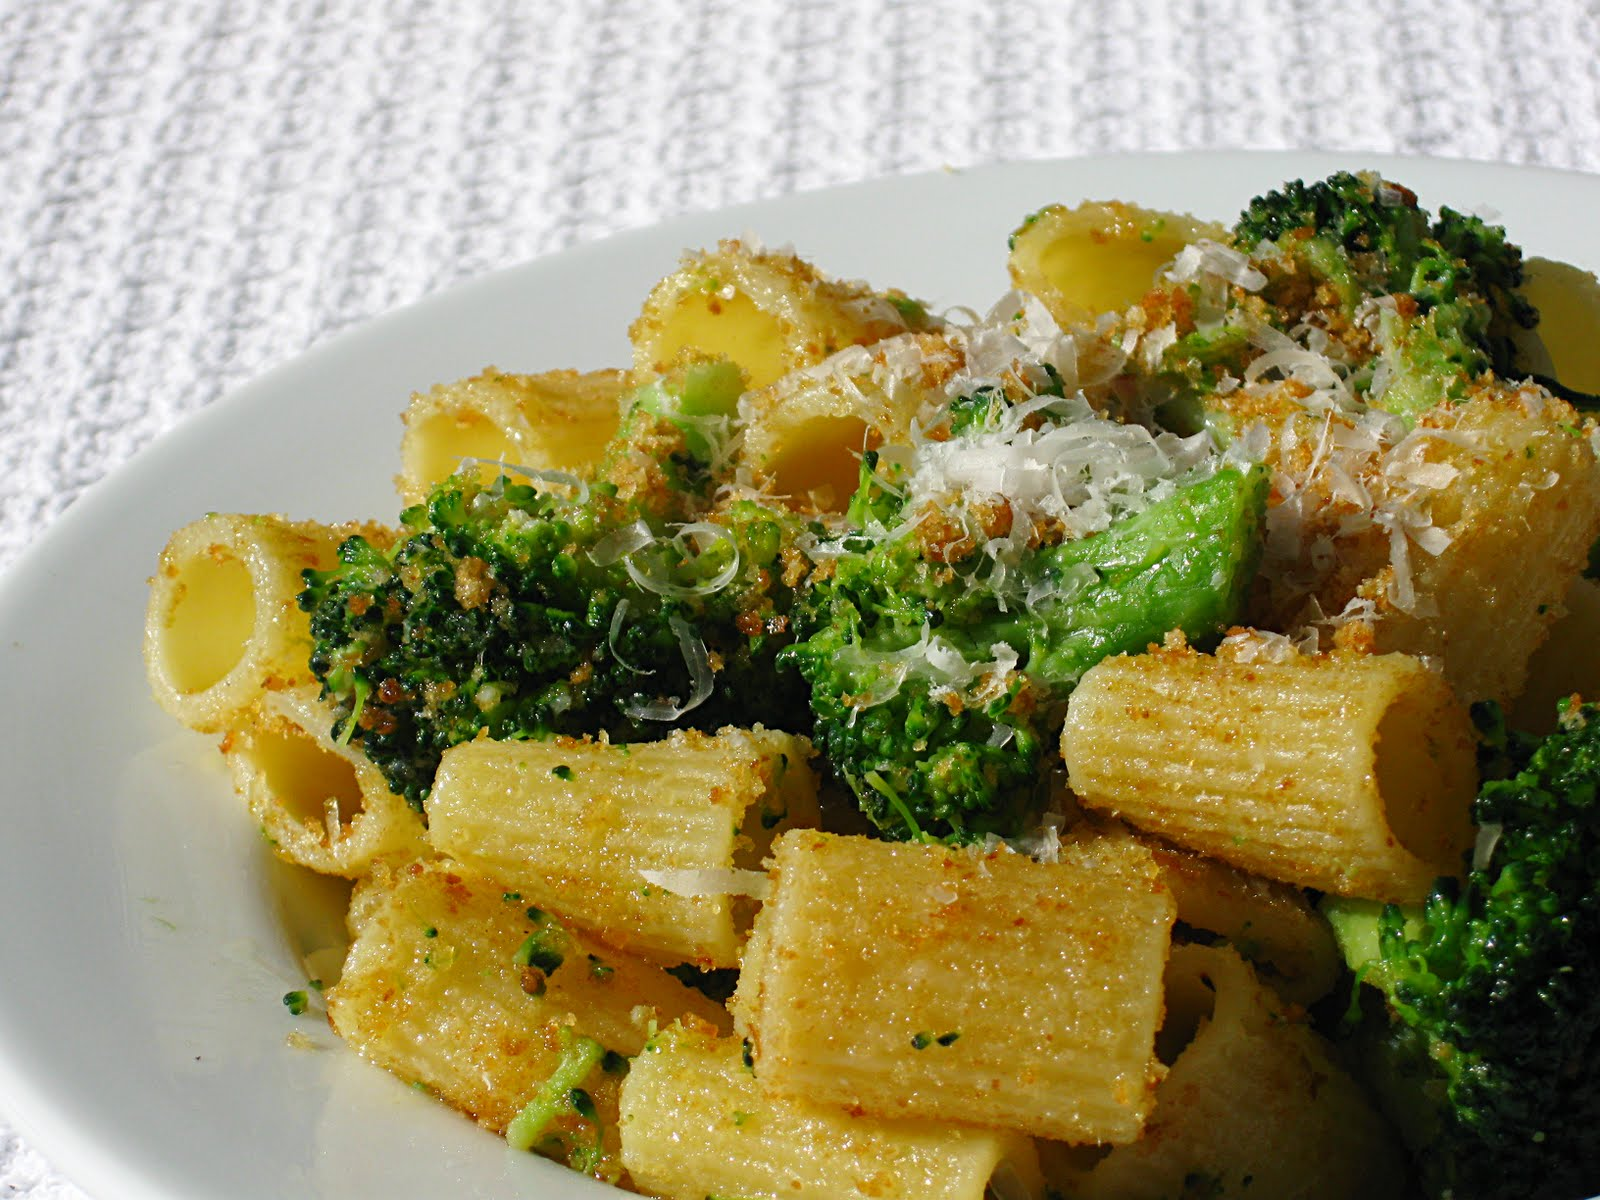 All That Splatters: Rigatoni with Broccoli, Garlic & Breadcrumbs